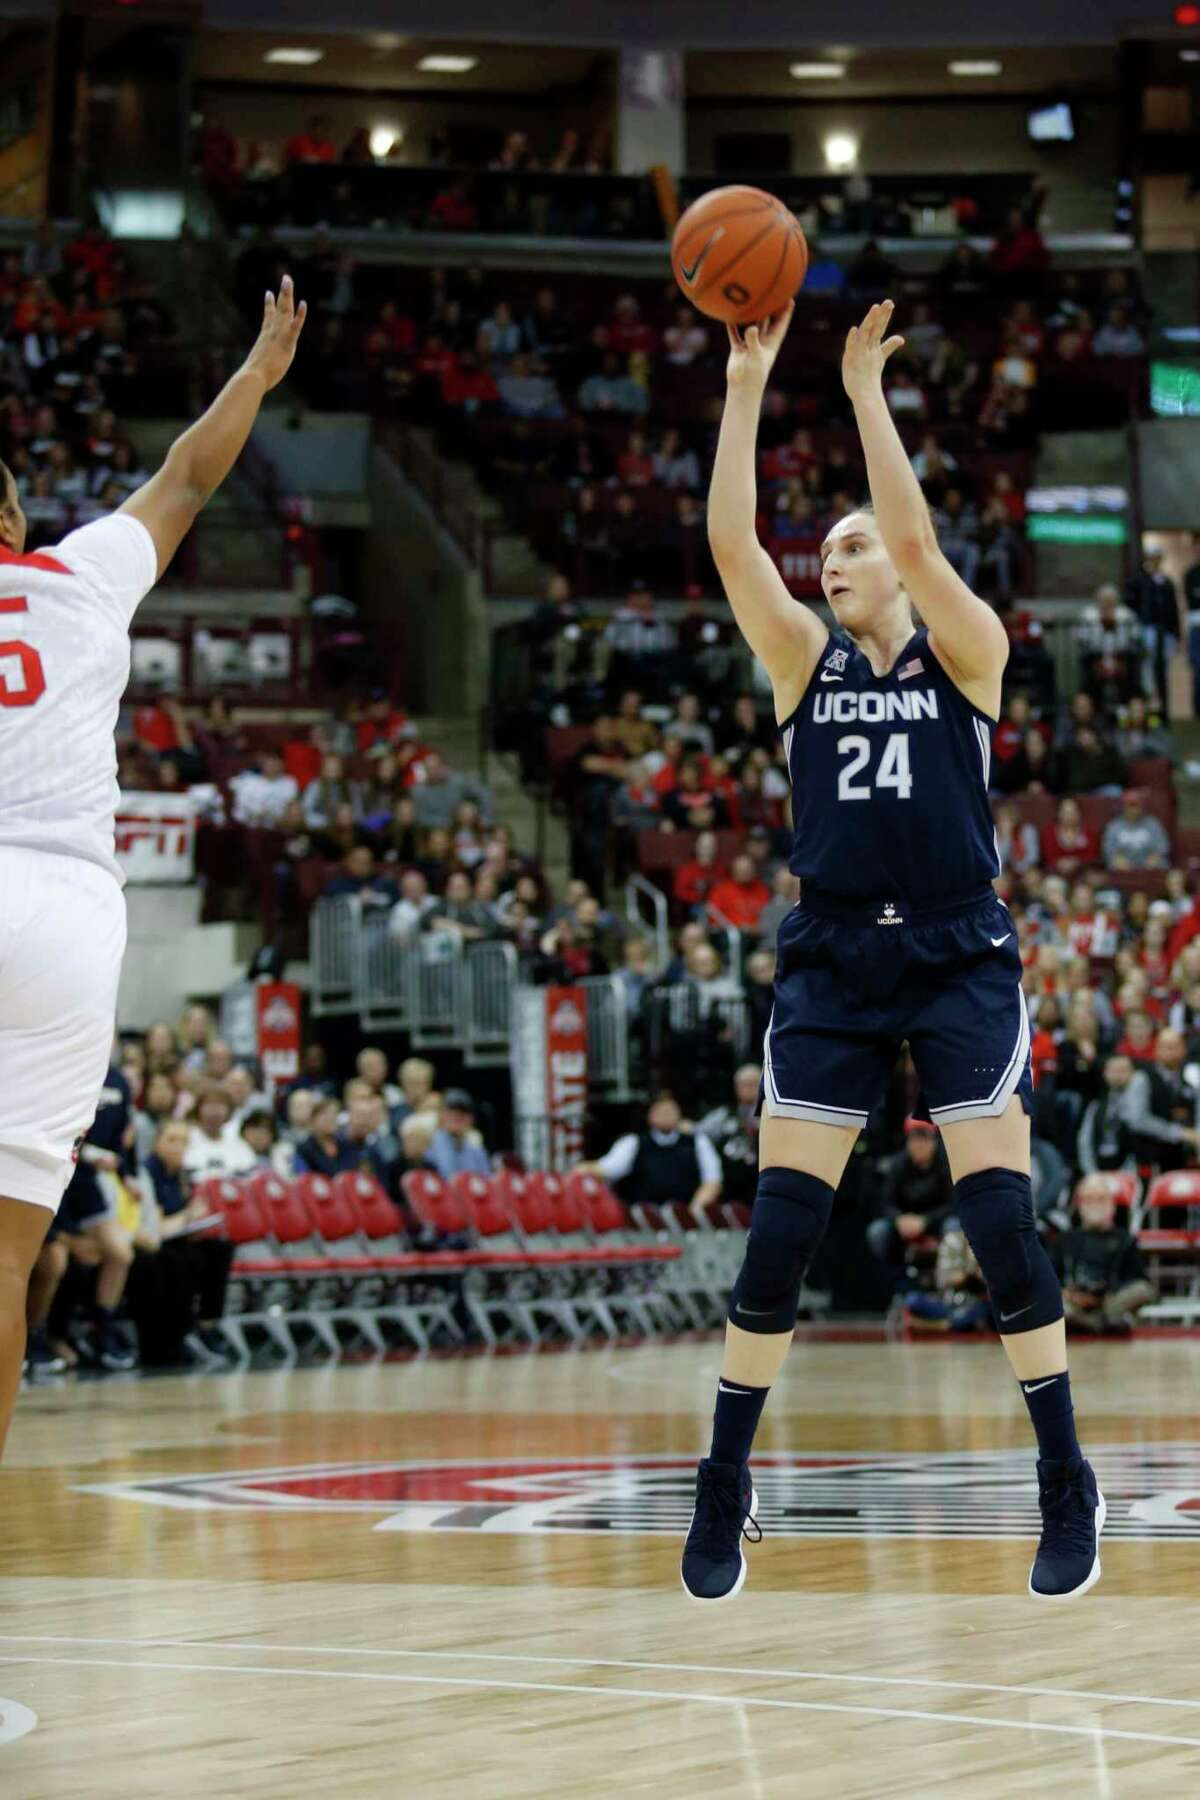 UConn guard Anna Makurat, right, goes up for a shot in front of Ohio State guard Kaelynn Satterfield on Nov. 24.